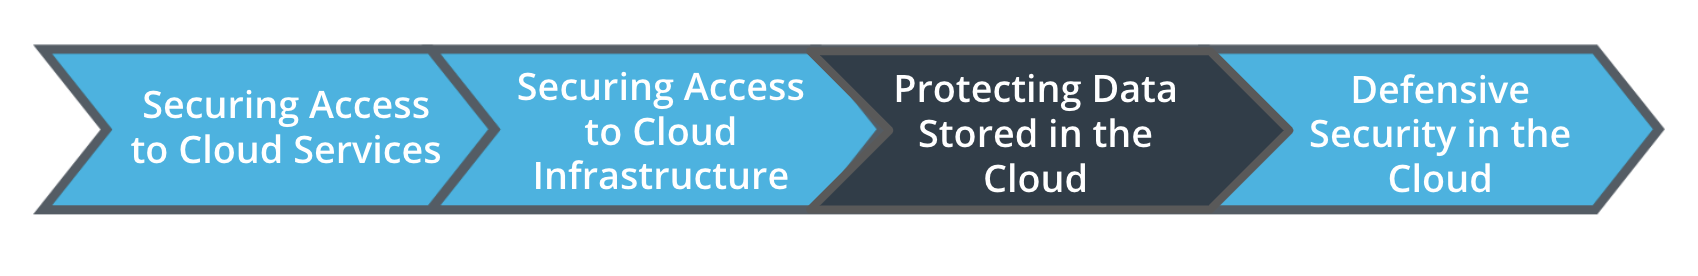 You are starting the Protecting Data Stored in the Cloud lesson.